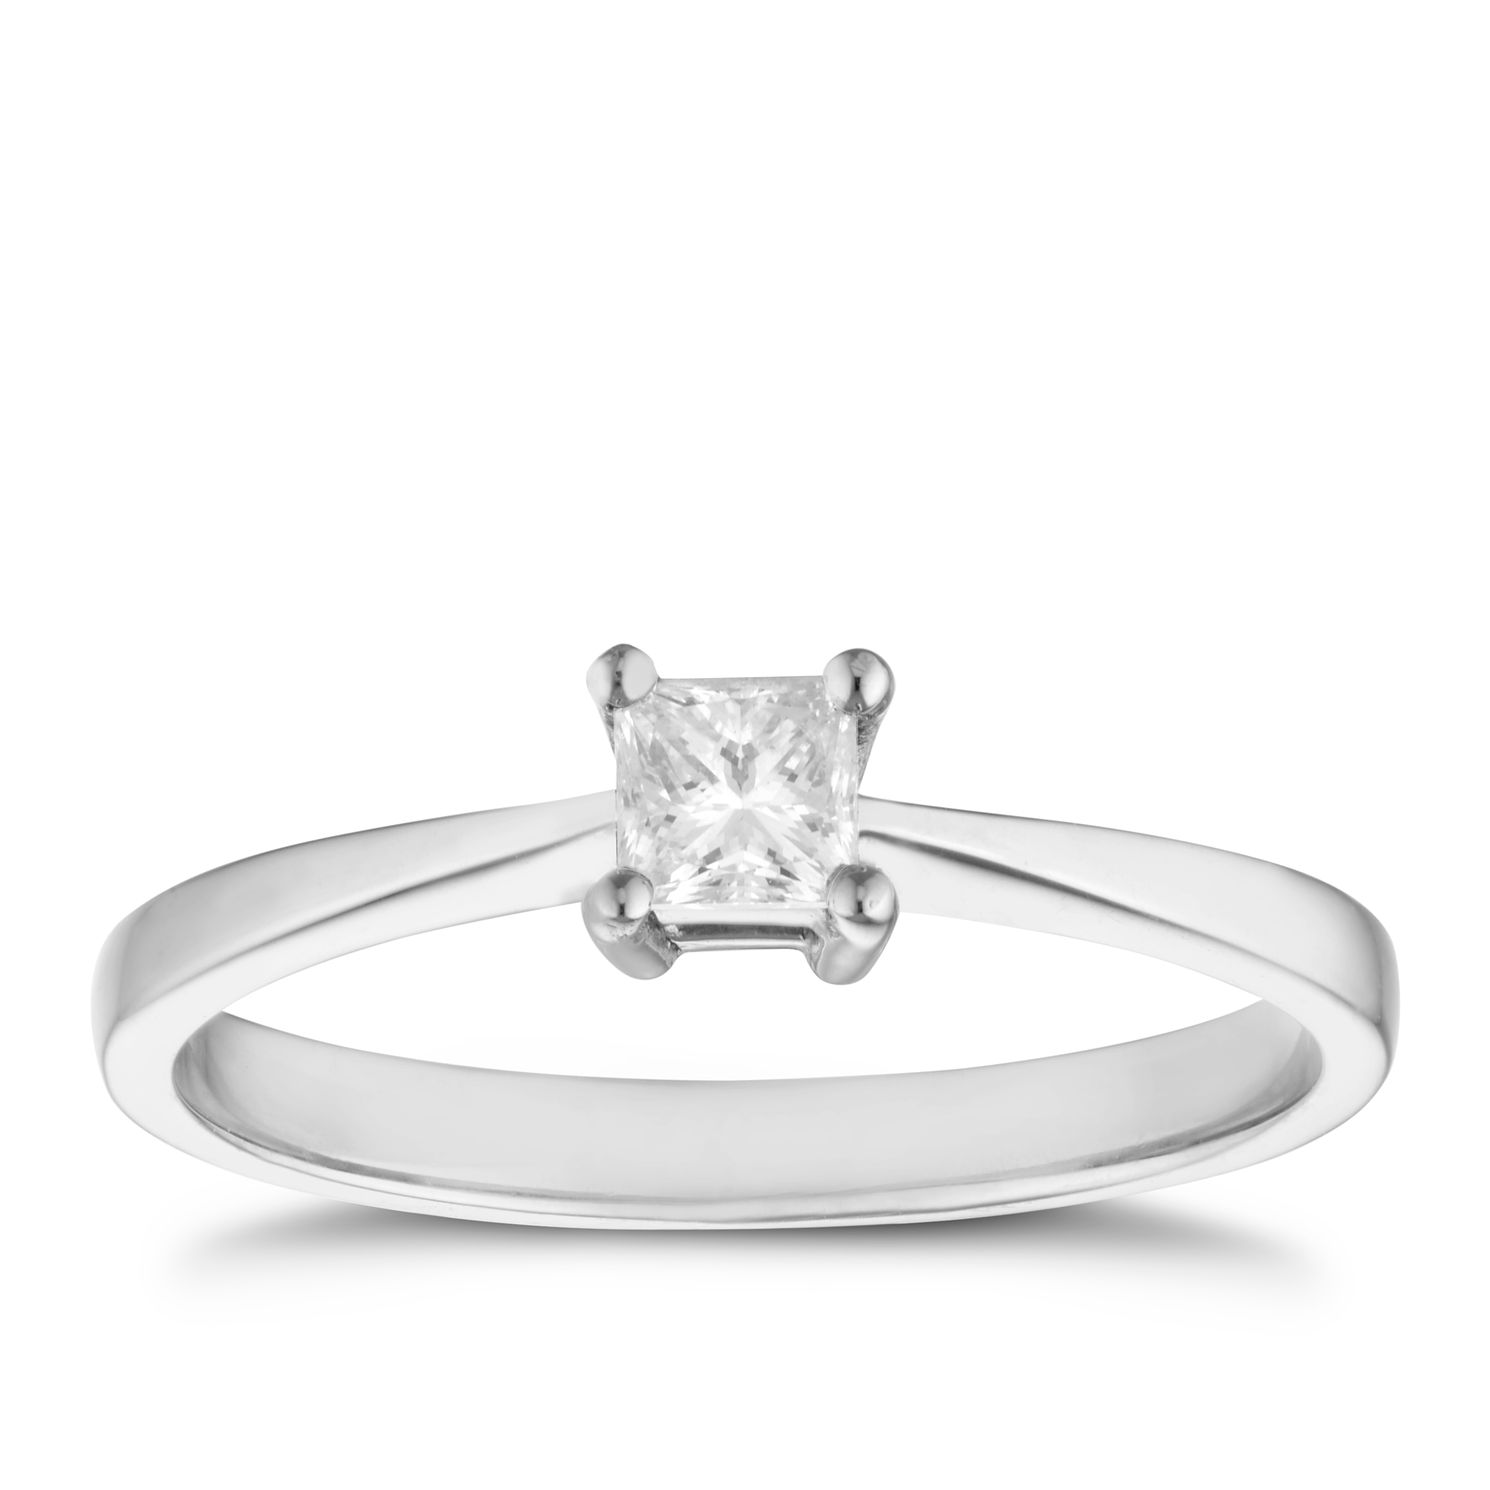 Platinum 0.25ct Princess Cut Diamond Solitaire Ring - Product number 4691881